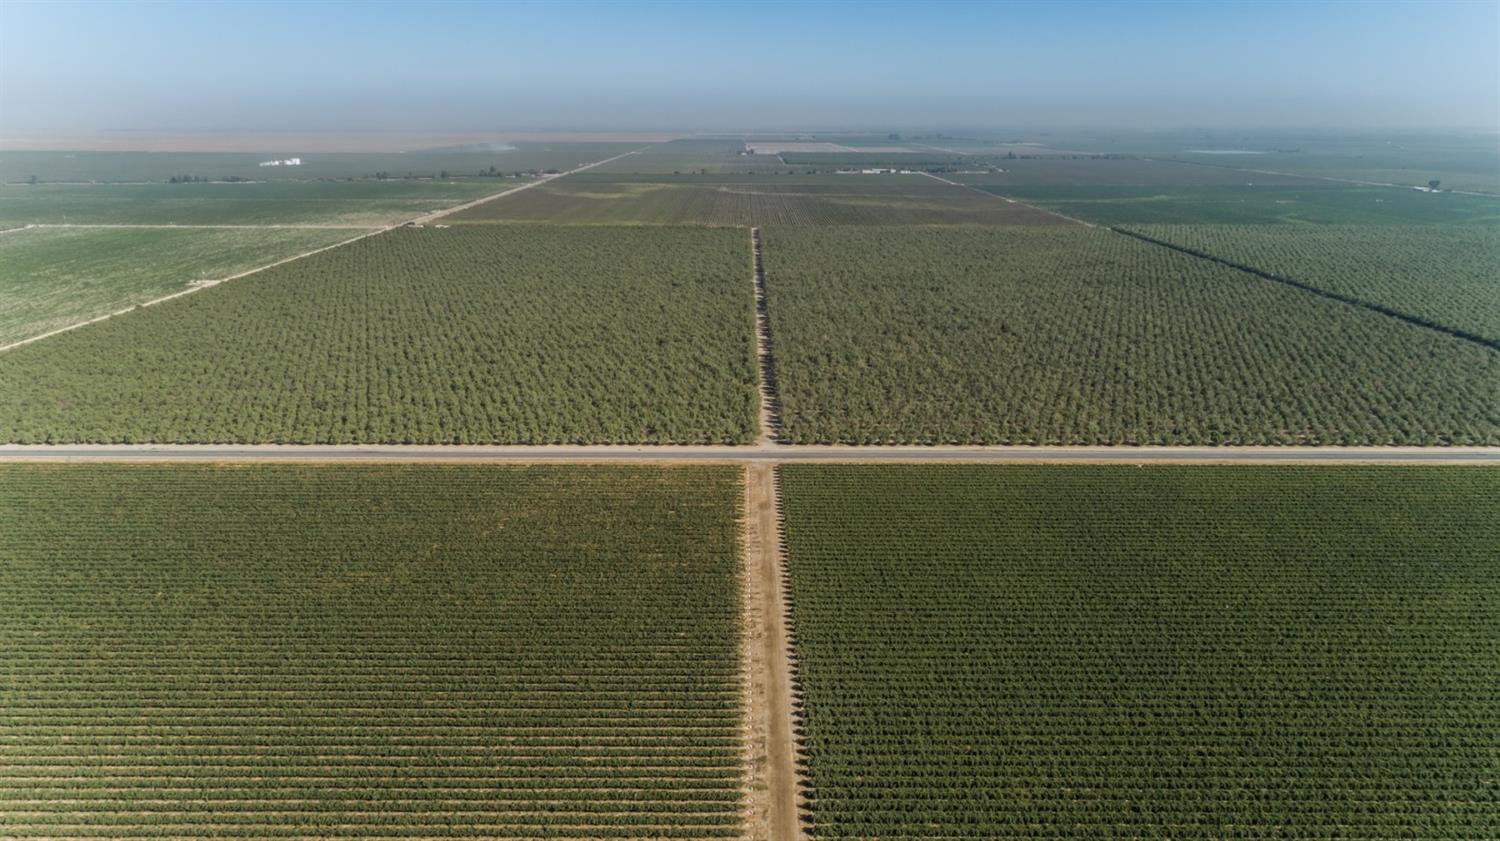 Beautiful mature almond orchard located on some of the best producing farm ground in California. Almonds are one of the most profitable crops that the industry has to offer, which is perfect for both the private farmer and the institutional investor. Located approximately 3 miles from the San Joaquin River, the area is going to have positive water table influence for years to come.